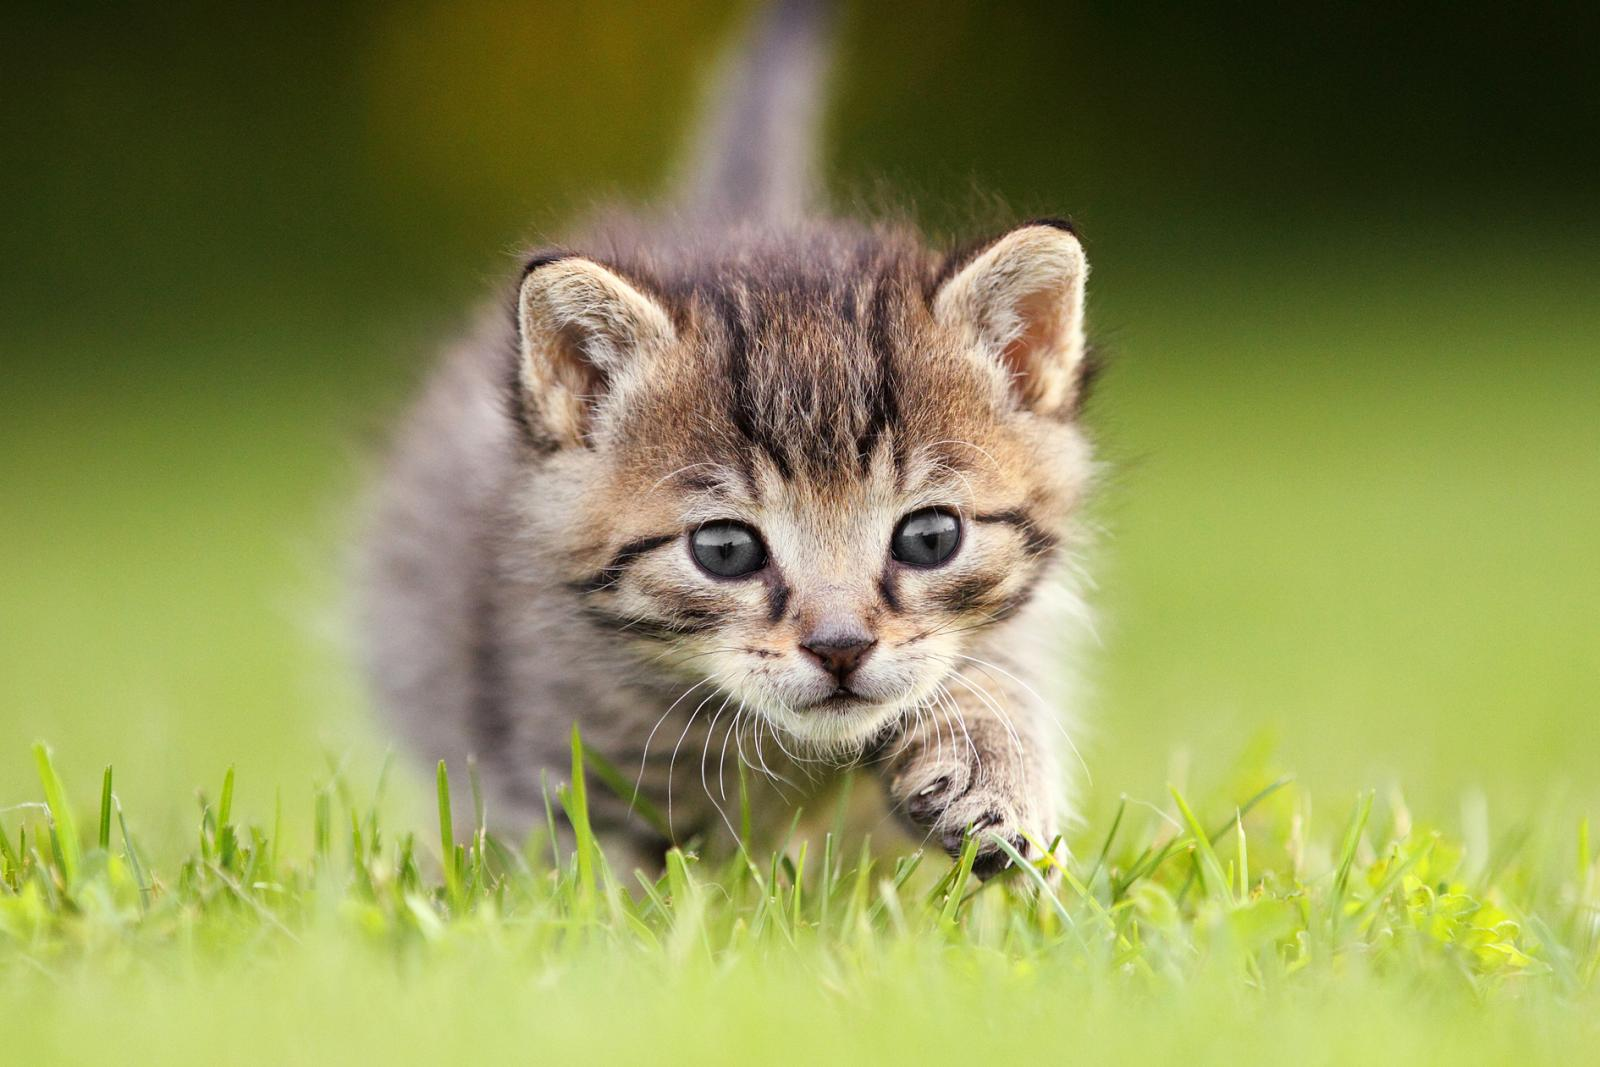 Kitten sneaking up